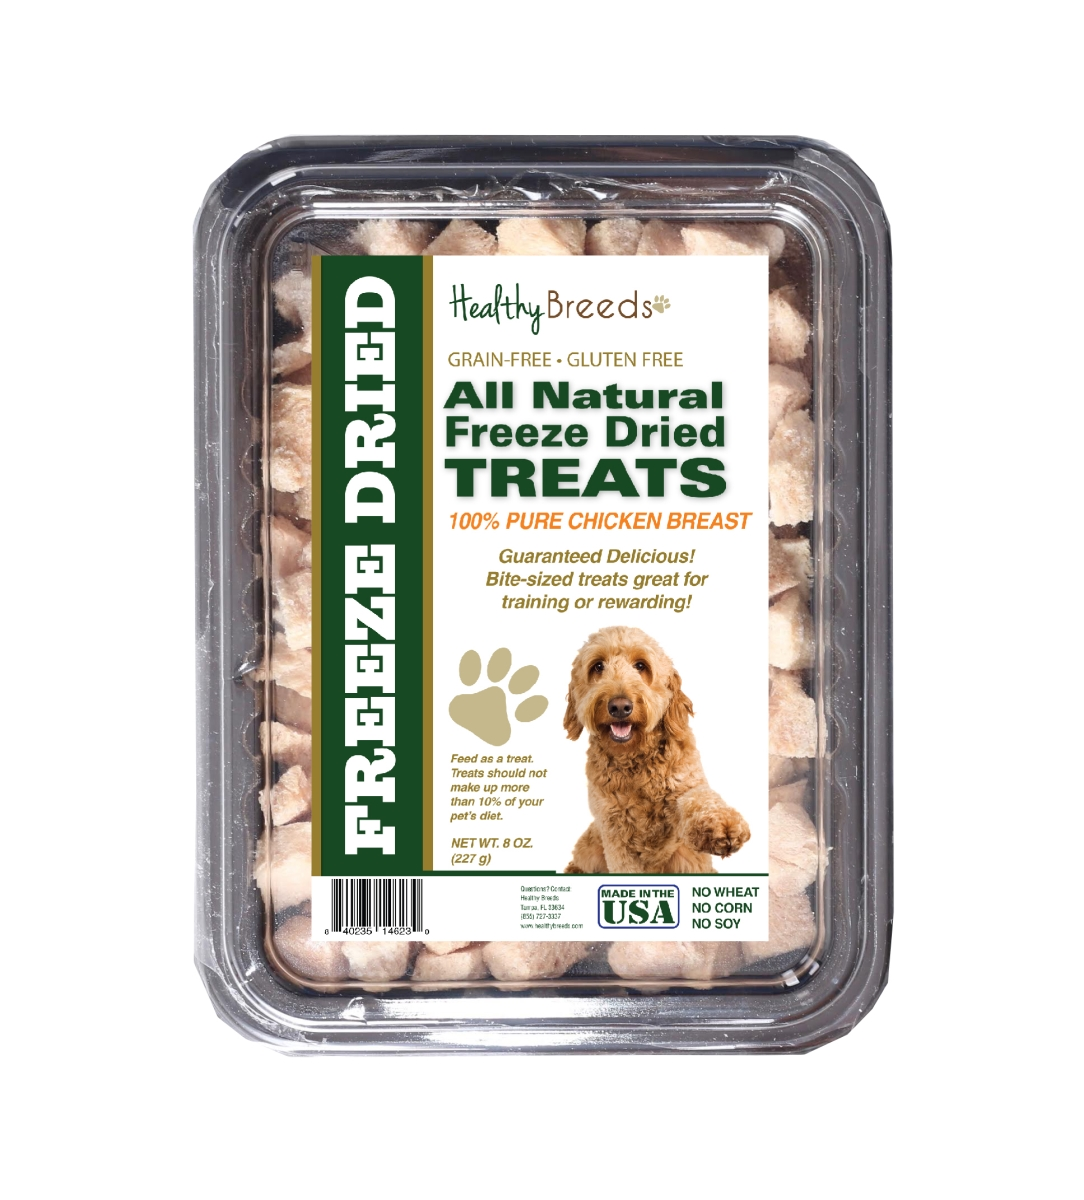 Healthy Breeds 840235146230 8 oz Goldendoodle All Natural Freeze Dried Treats Chicken Breast